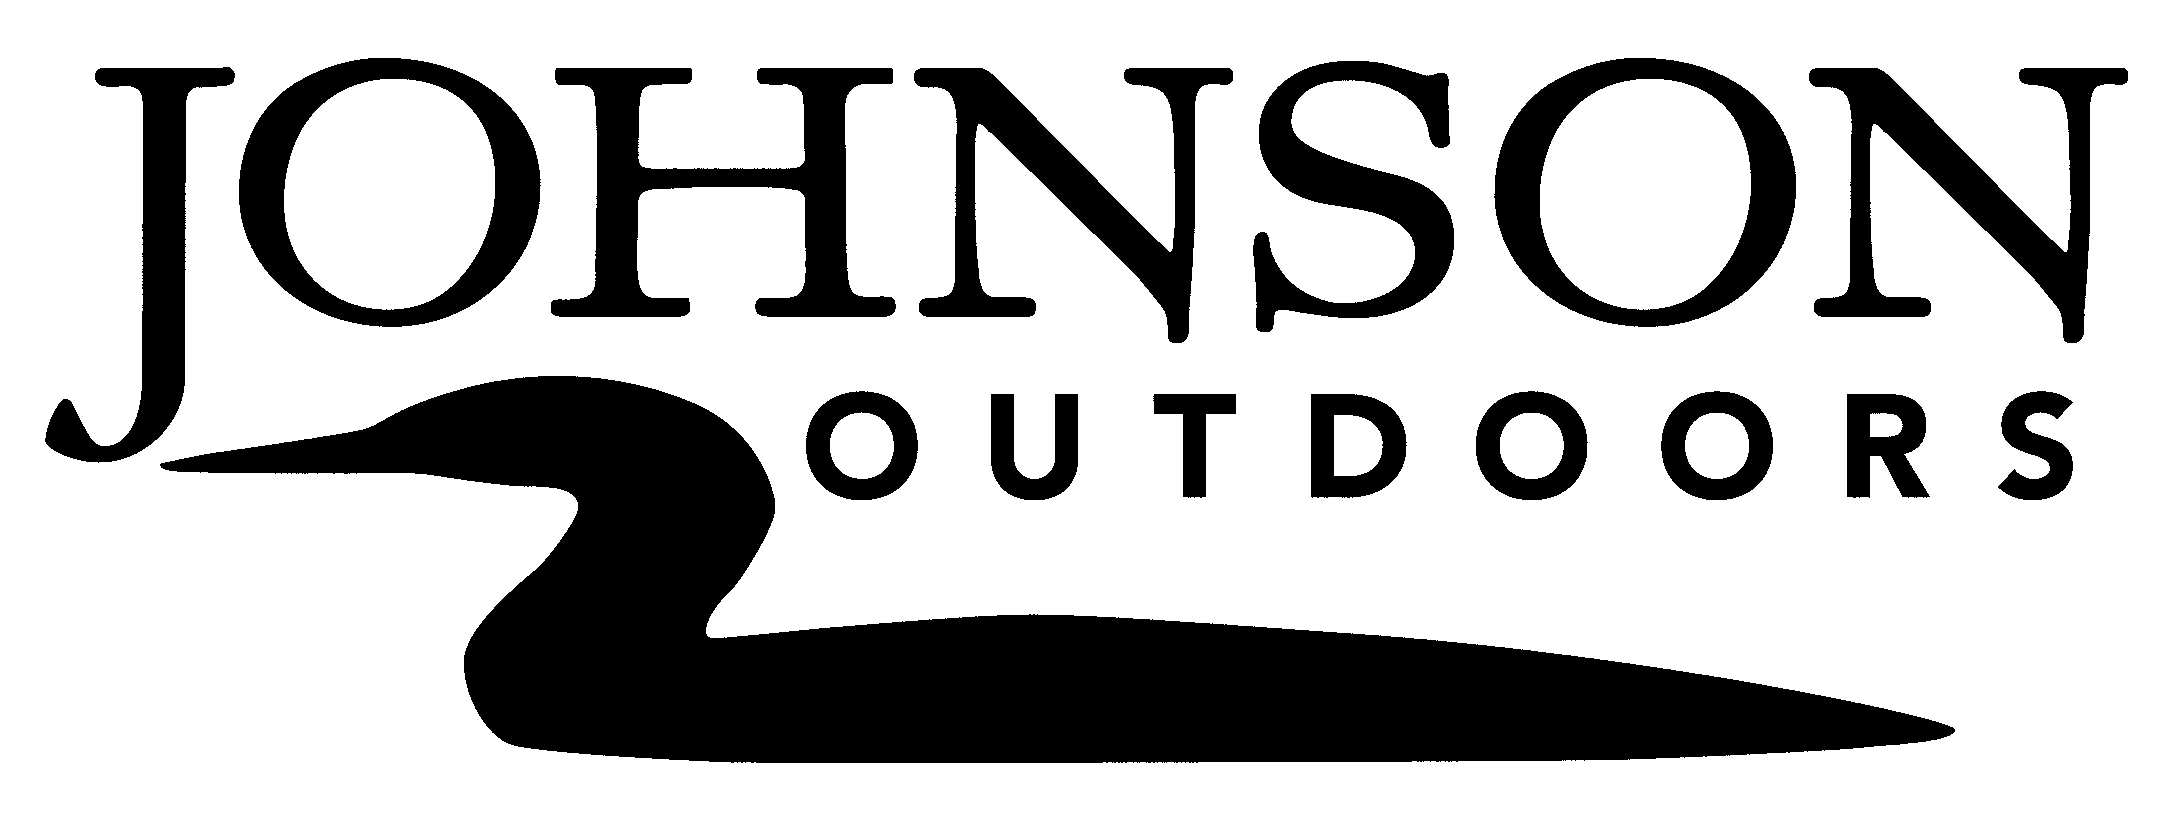 Johnson Outdoors Inc  « Logos & Brands Directory